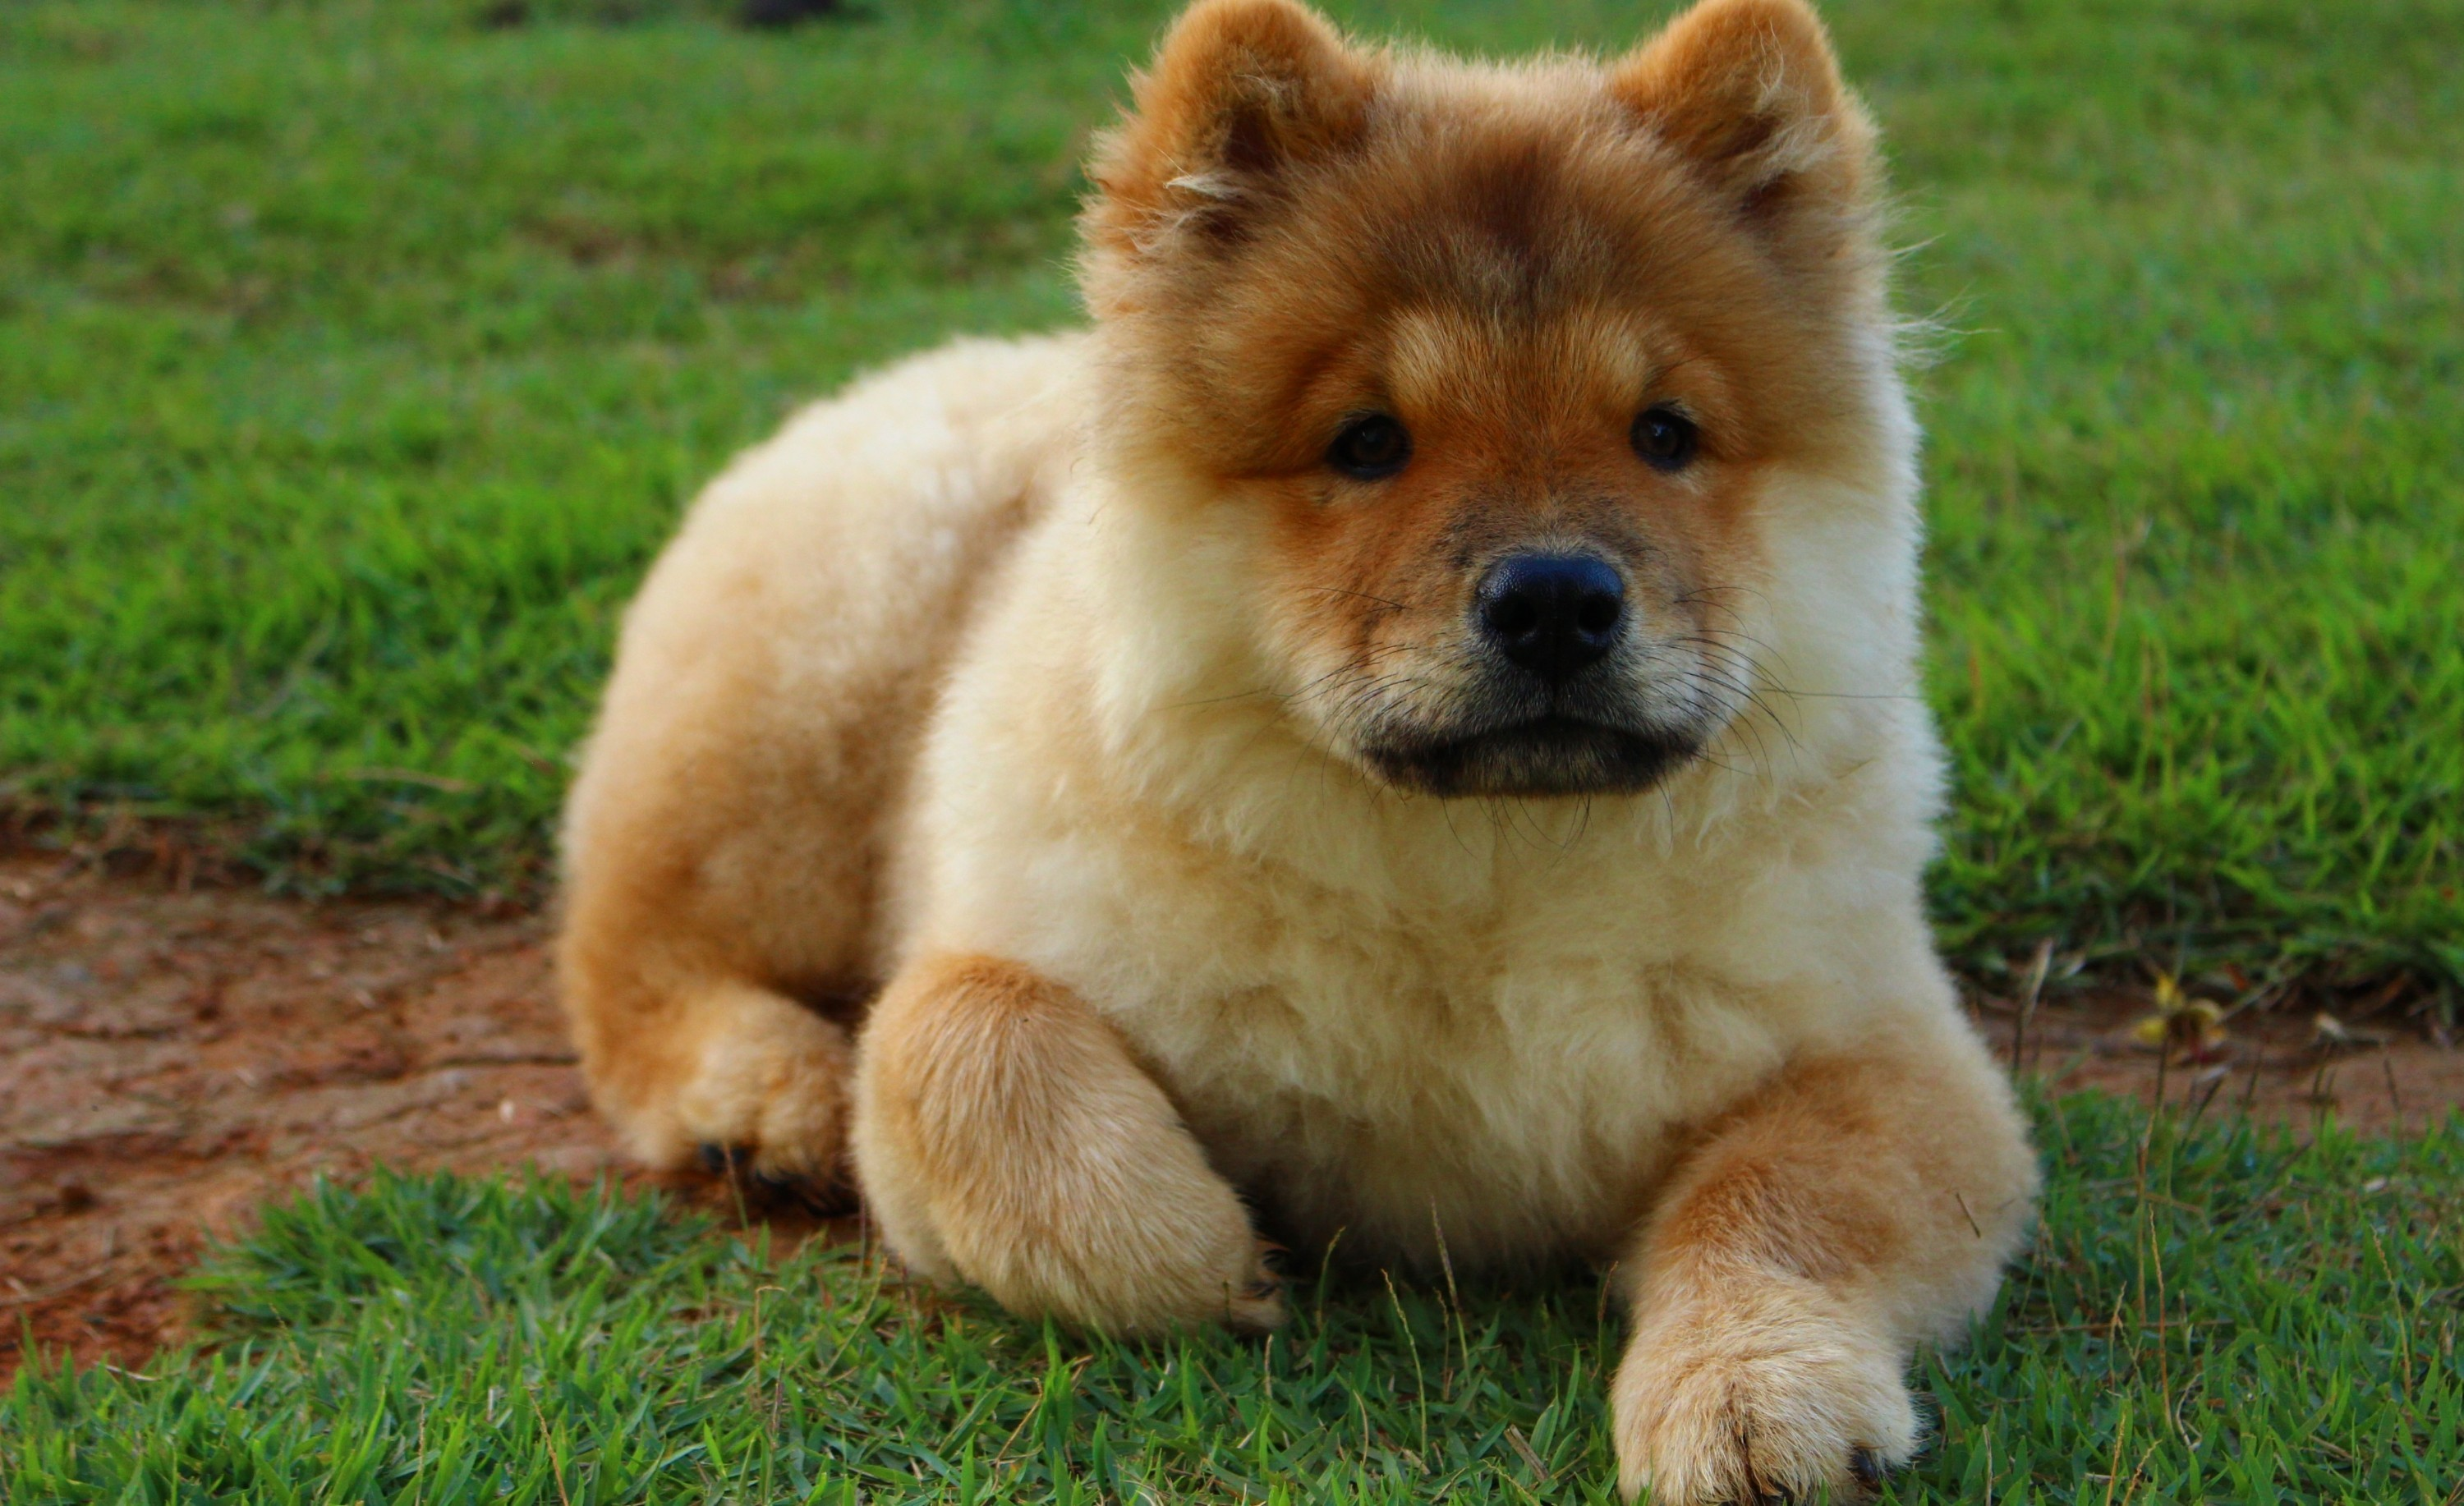 Download 3000x1834 Puppy, Sitting, Grass, Chow Chow, Fluffy, Dogs